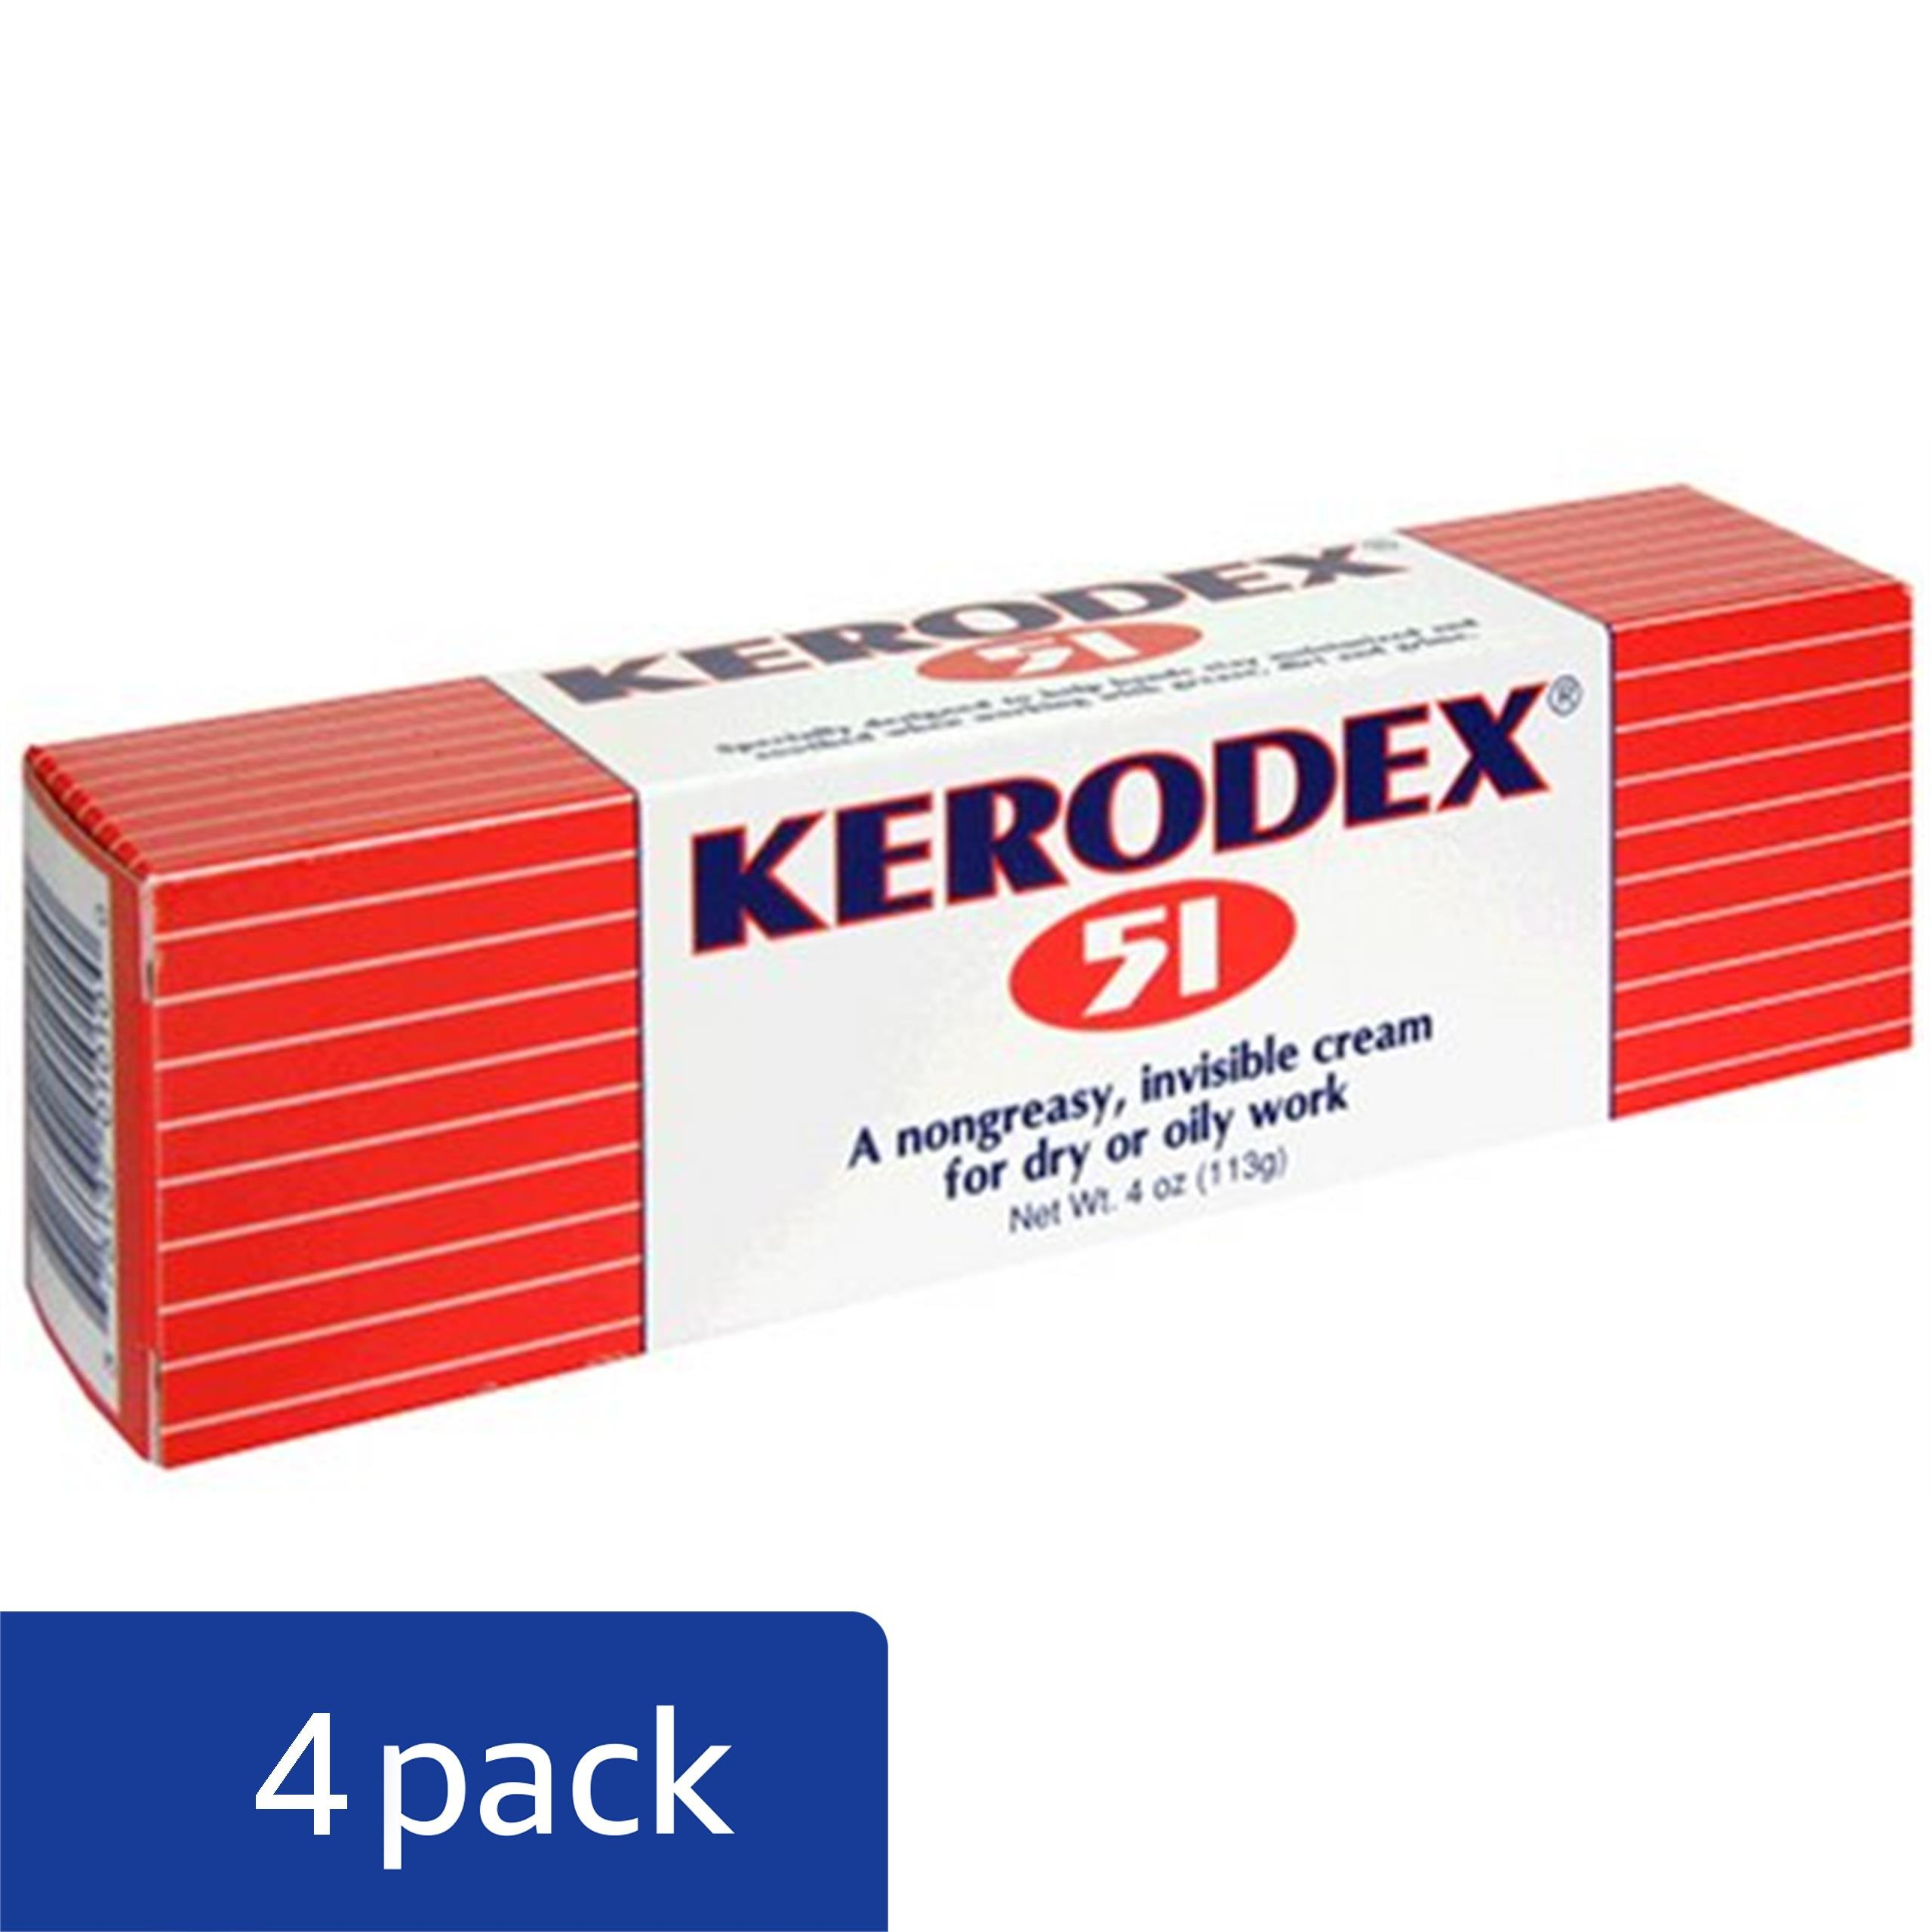 Medtech Products Kerodex 51 for Dry or Oily Work, Cream, 4 oz (113 g) (Pack of 4)